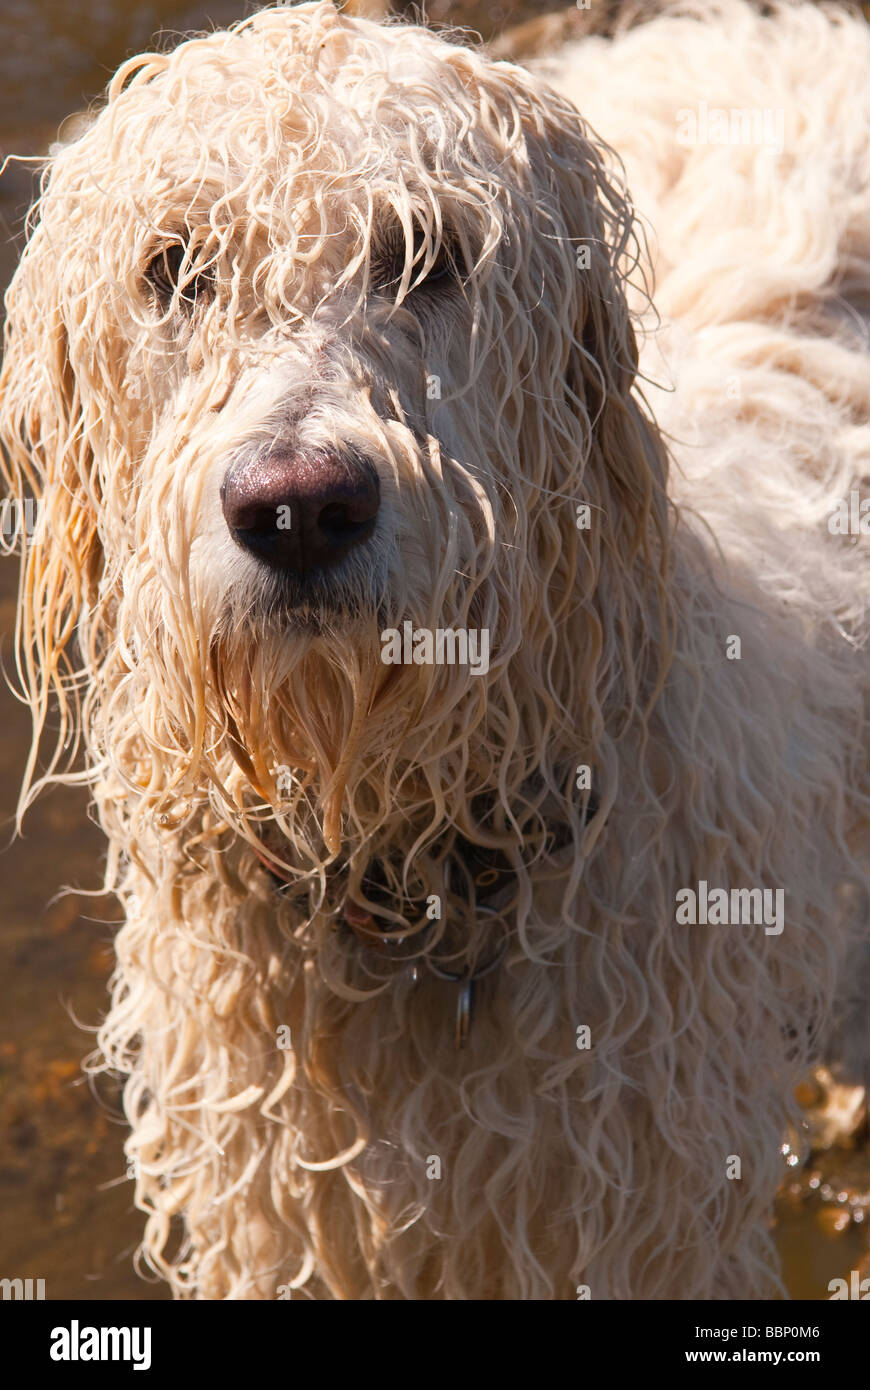 A Wet White Long Haired Dog Looking At The Camera Close Up